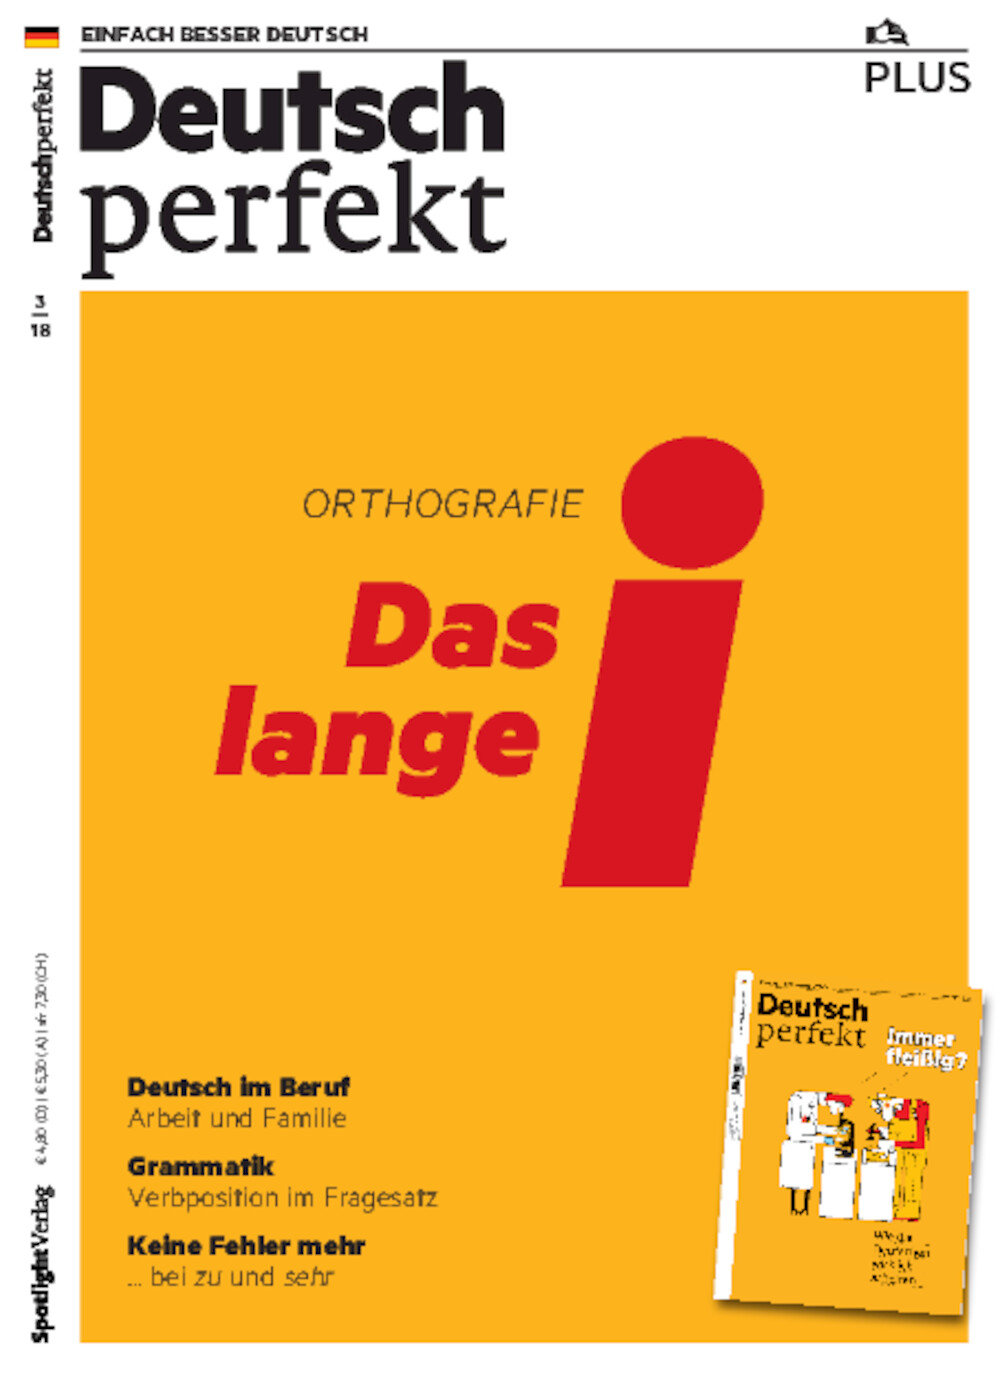 Deutsch perfekt PLUS 03/2018